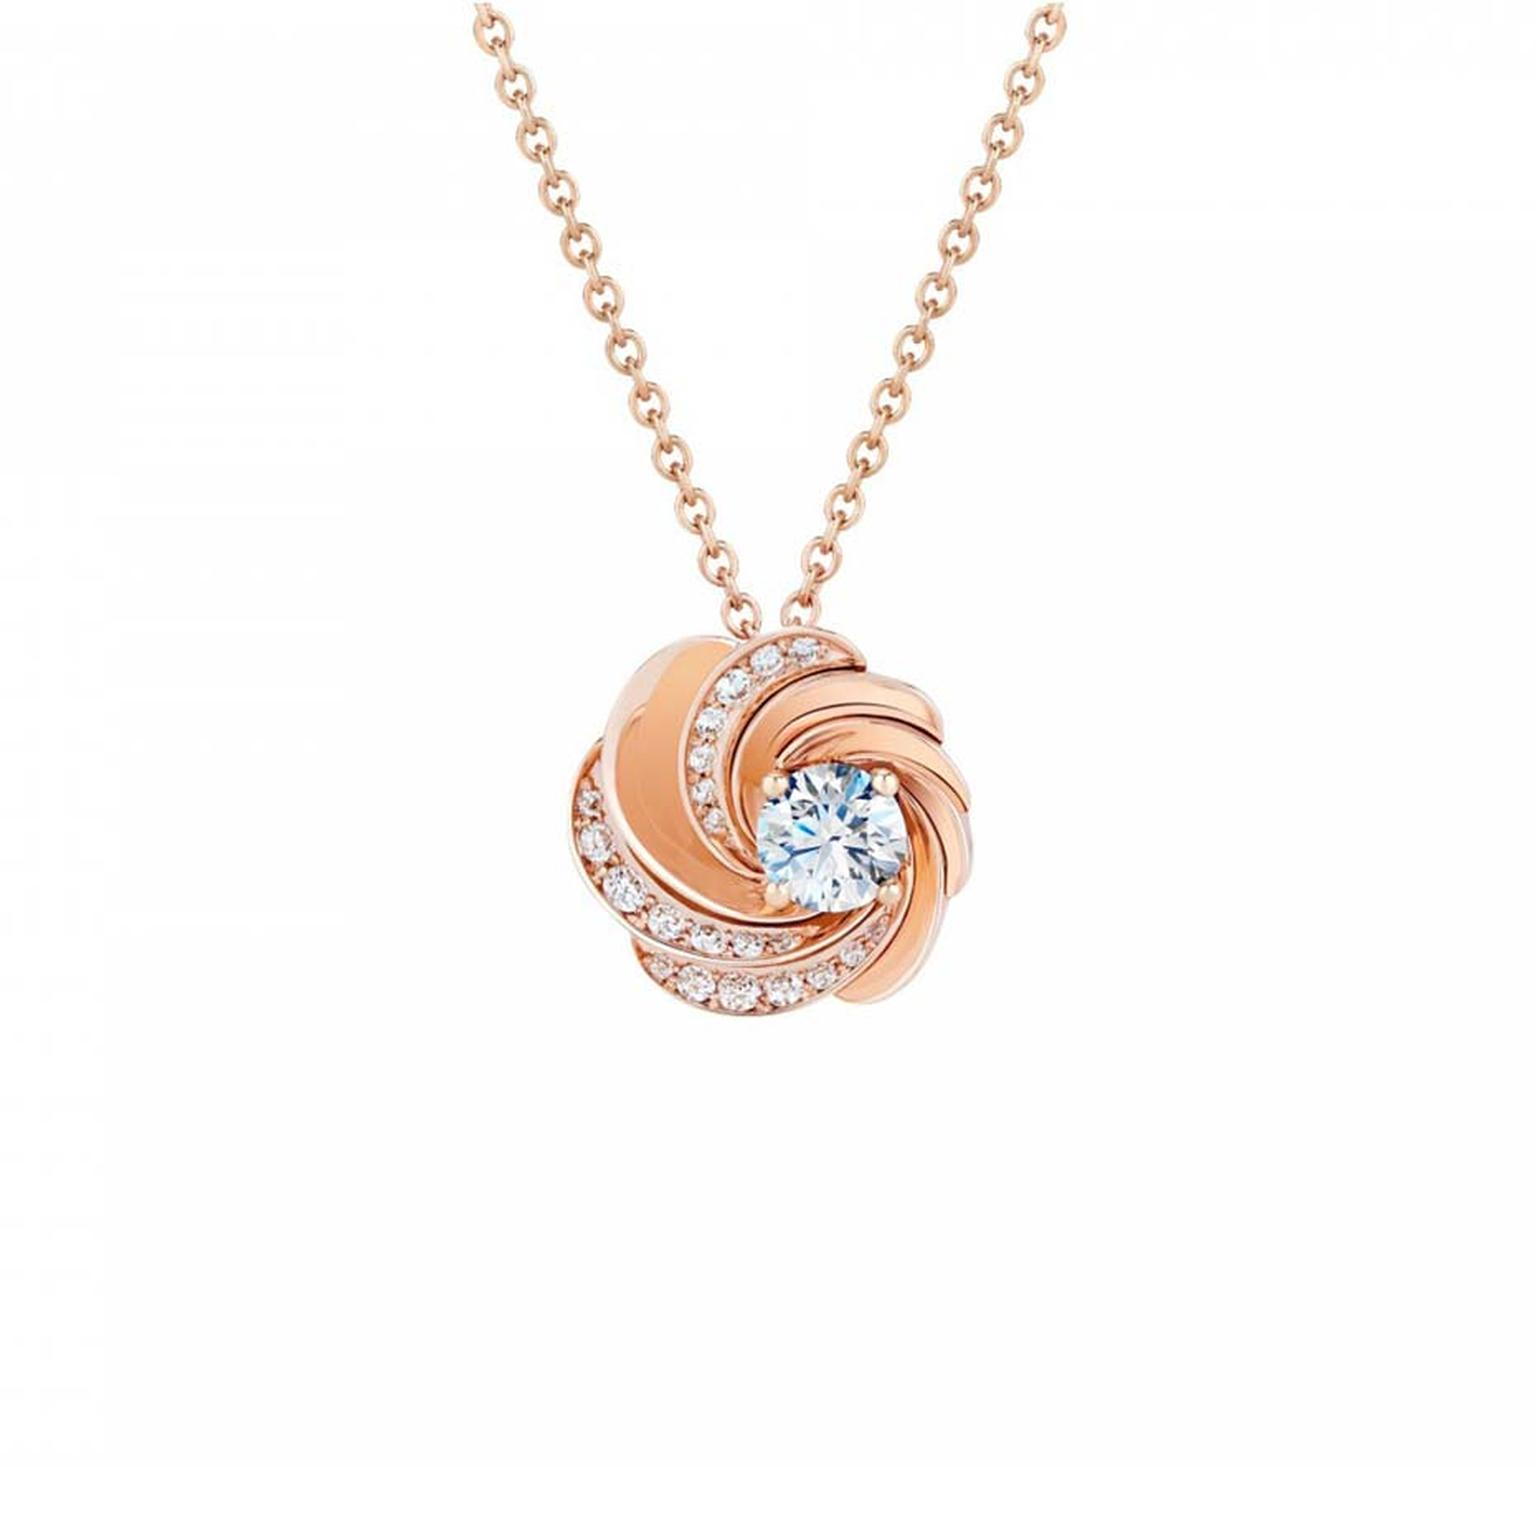 De Beers Aria rose gold necklace with diamonds.